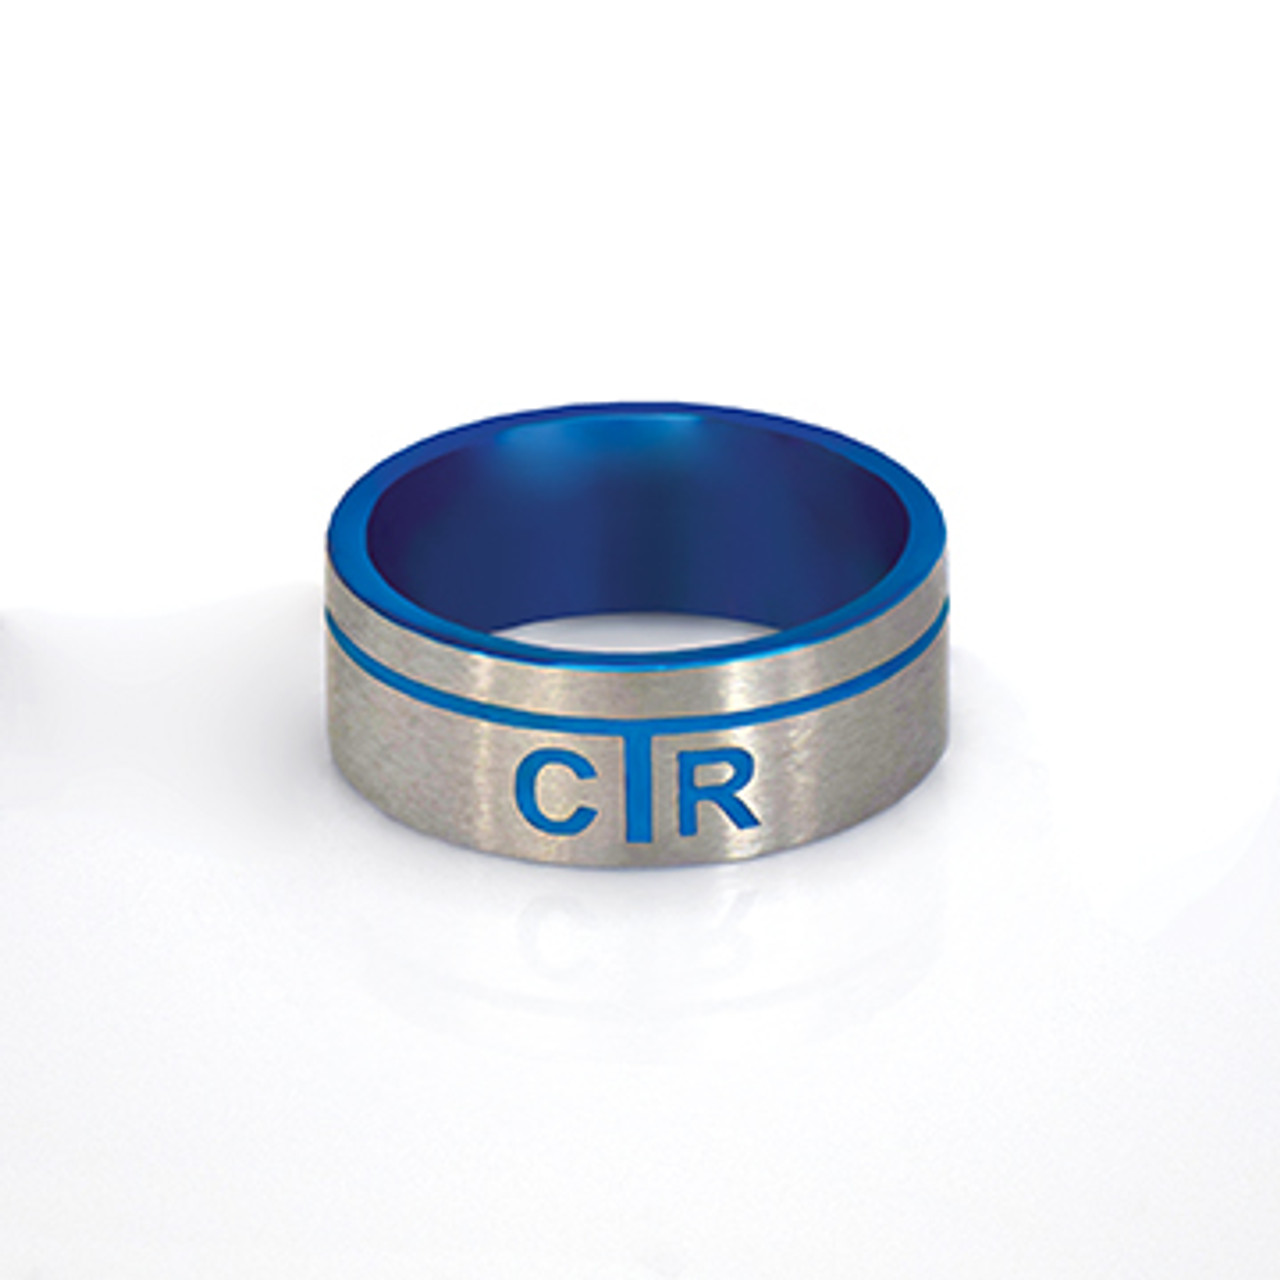 Astro CTR Ring (Stainless Steel) *